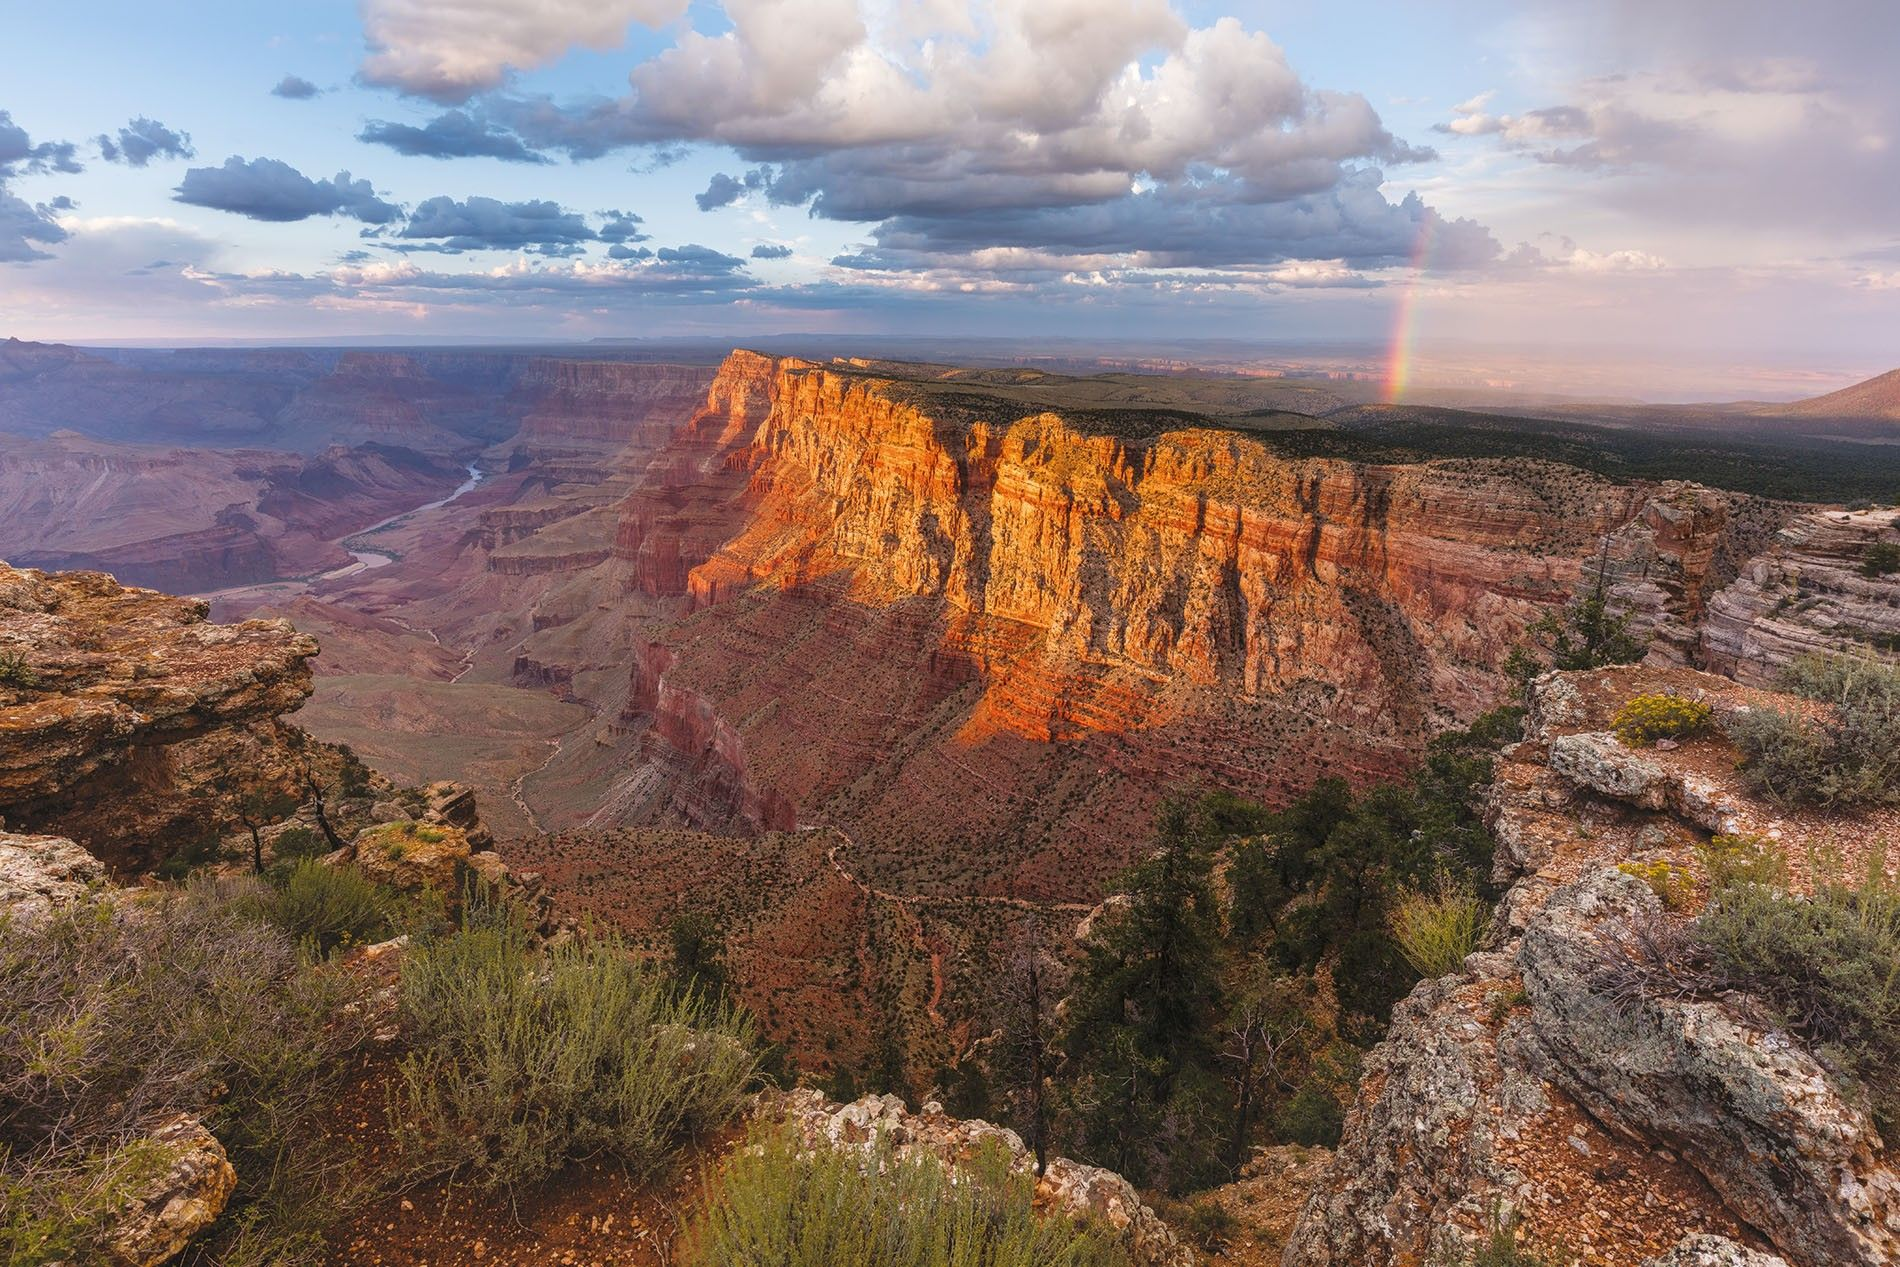 The view from Lipan Point is worth the short detour off the main drive along the ...